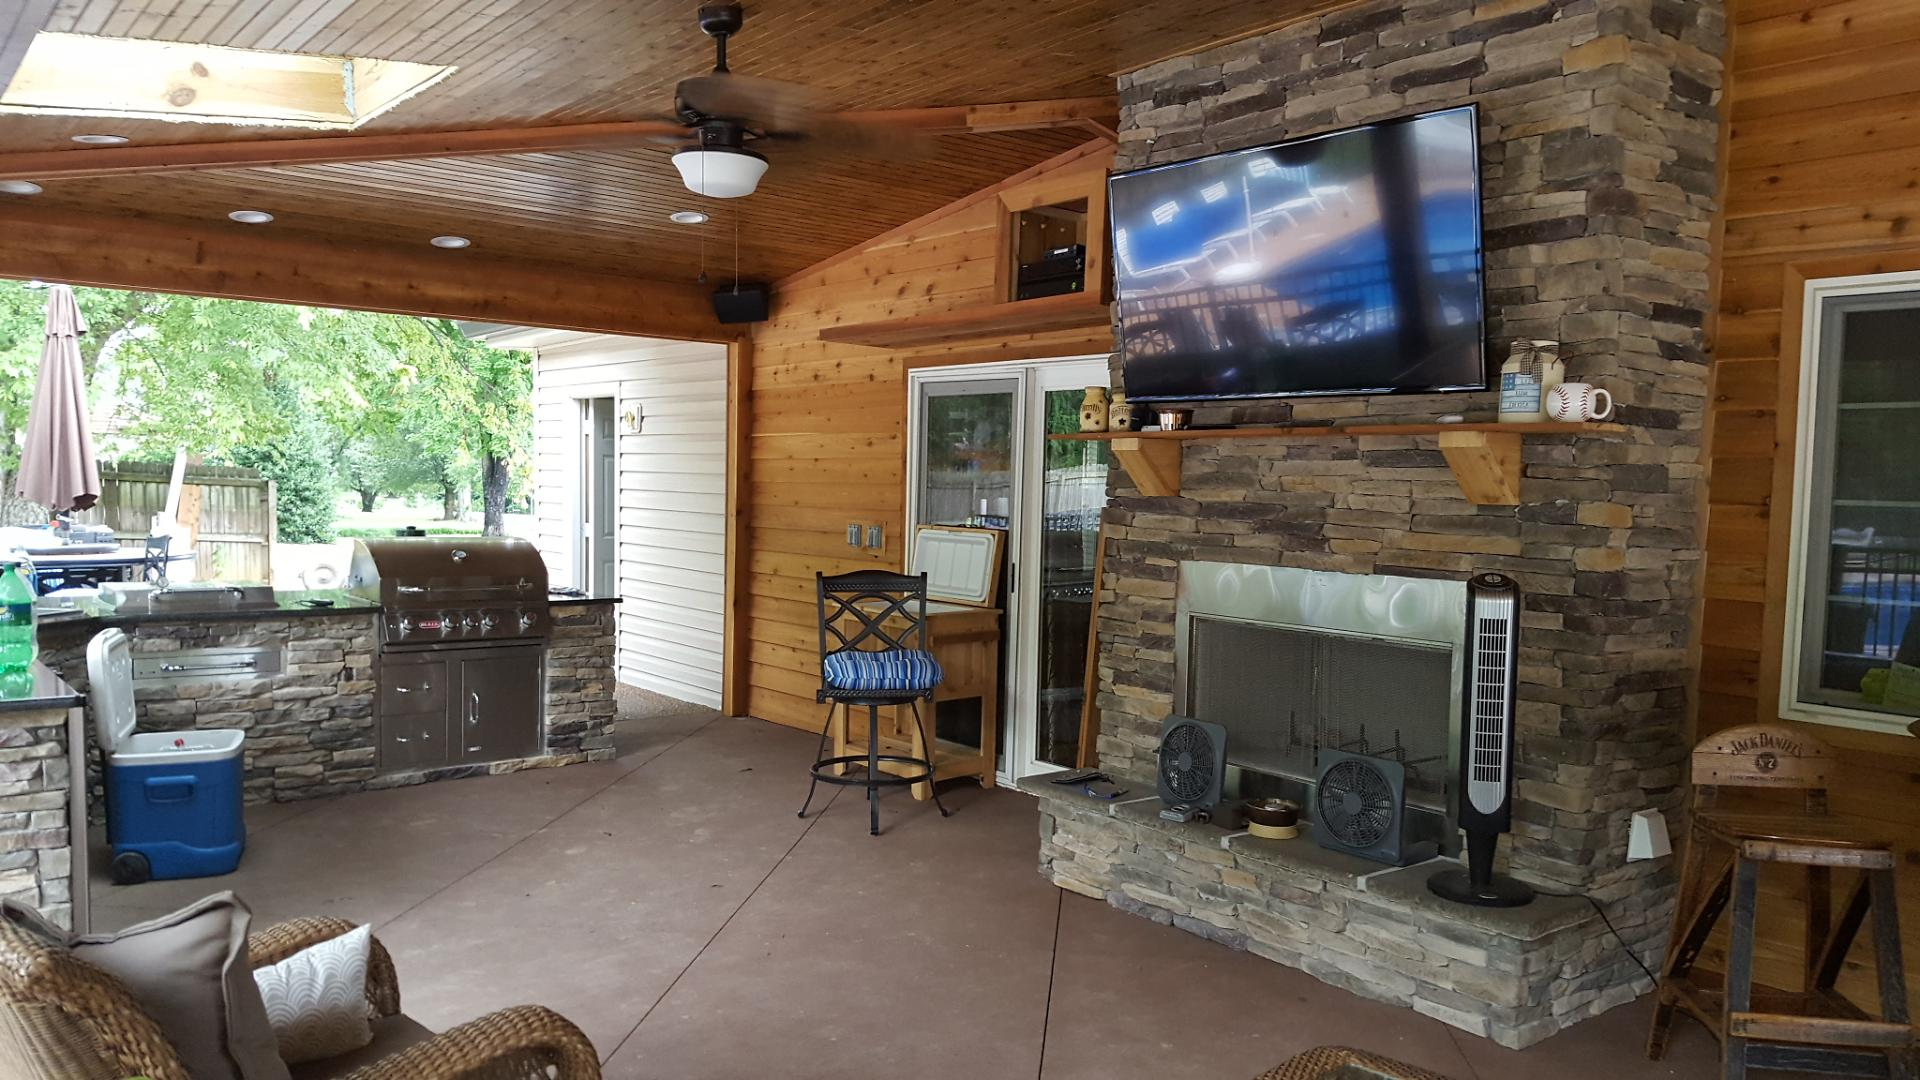 Joe M. Staub Building Group - Covered Patio with Outdoor ... on Covered Outdoor Kitchen With Fireplace id=75732